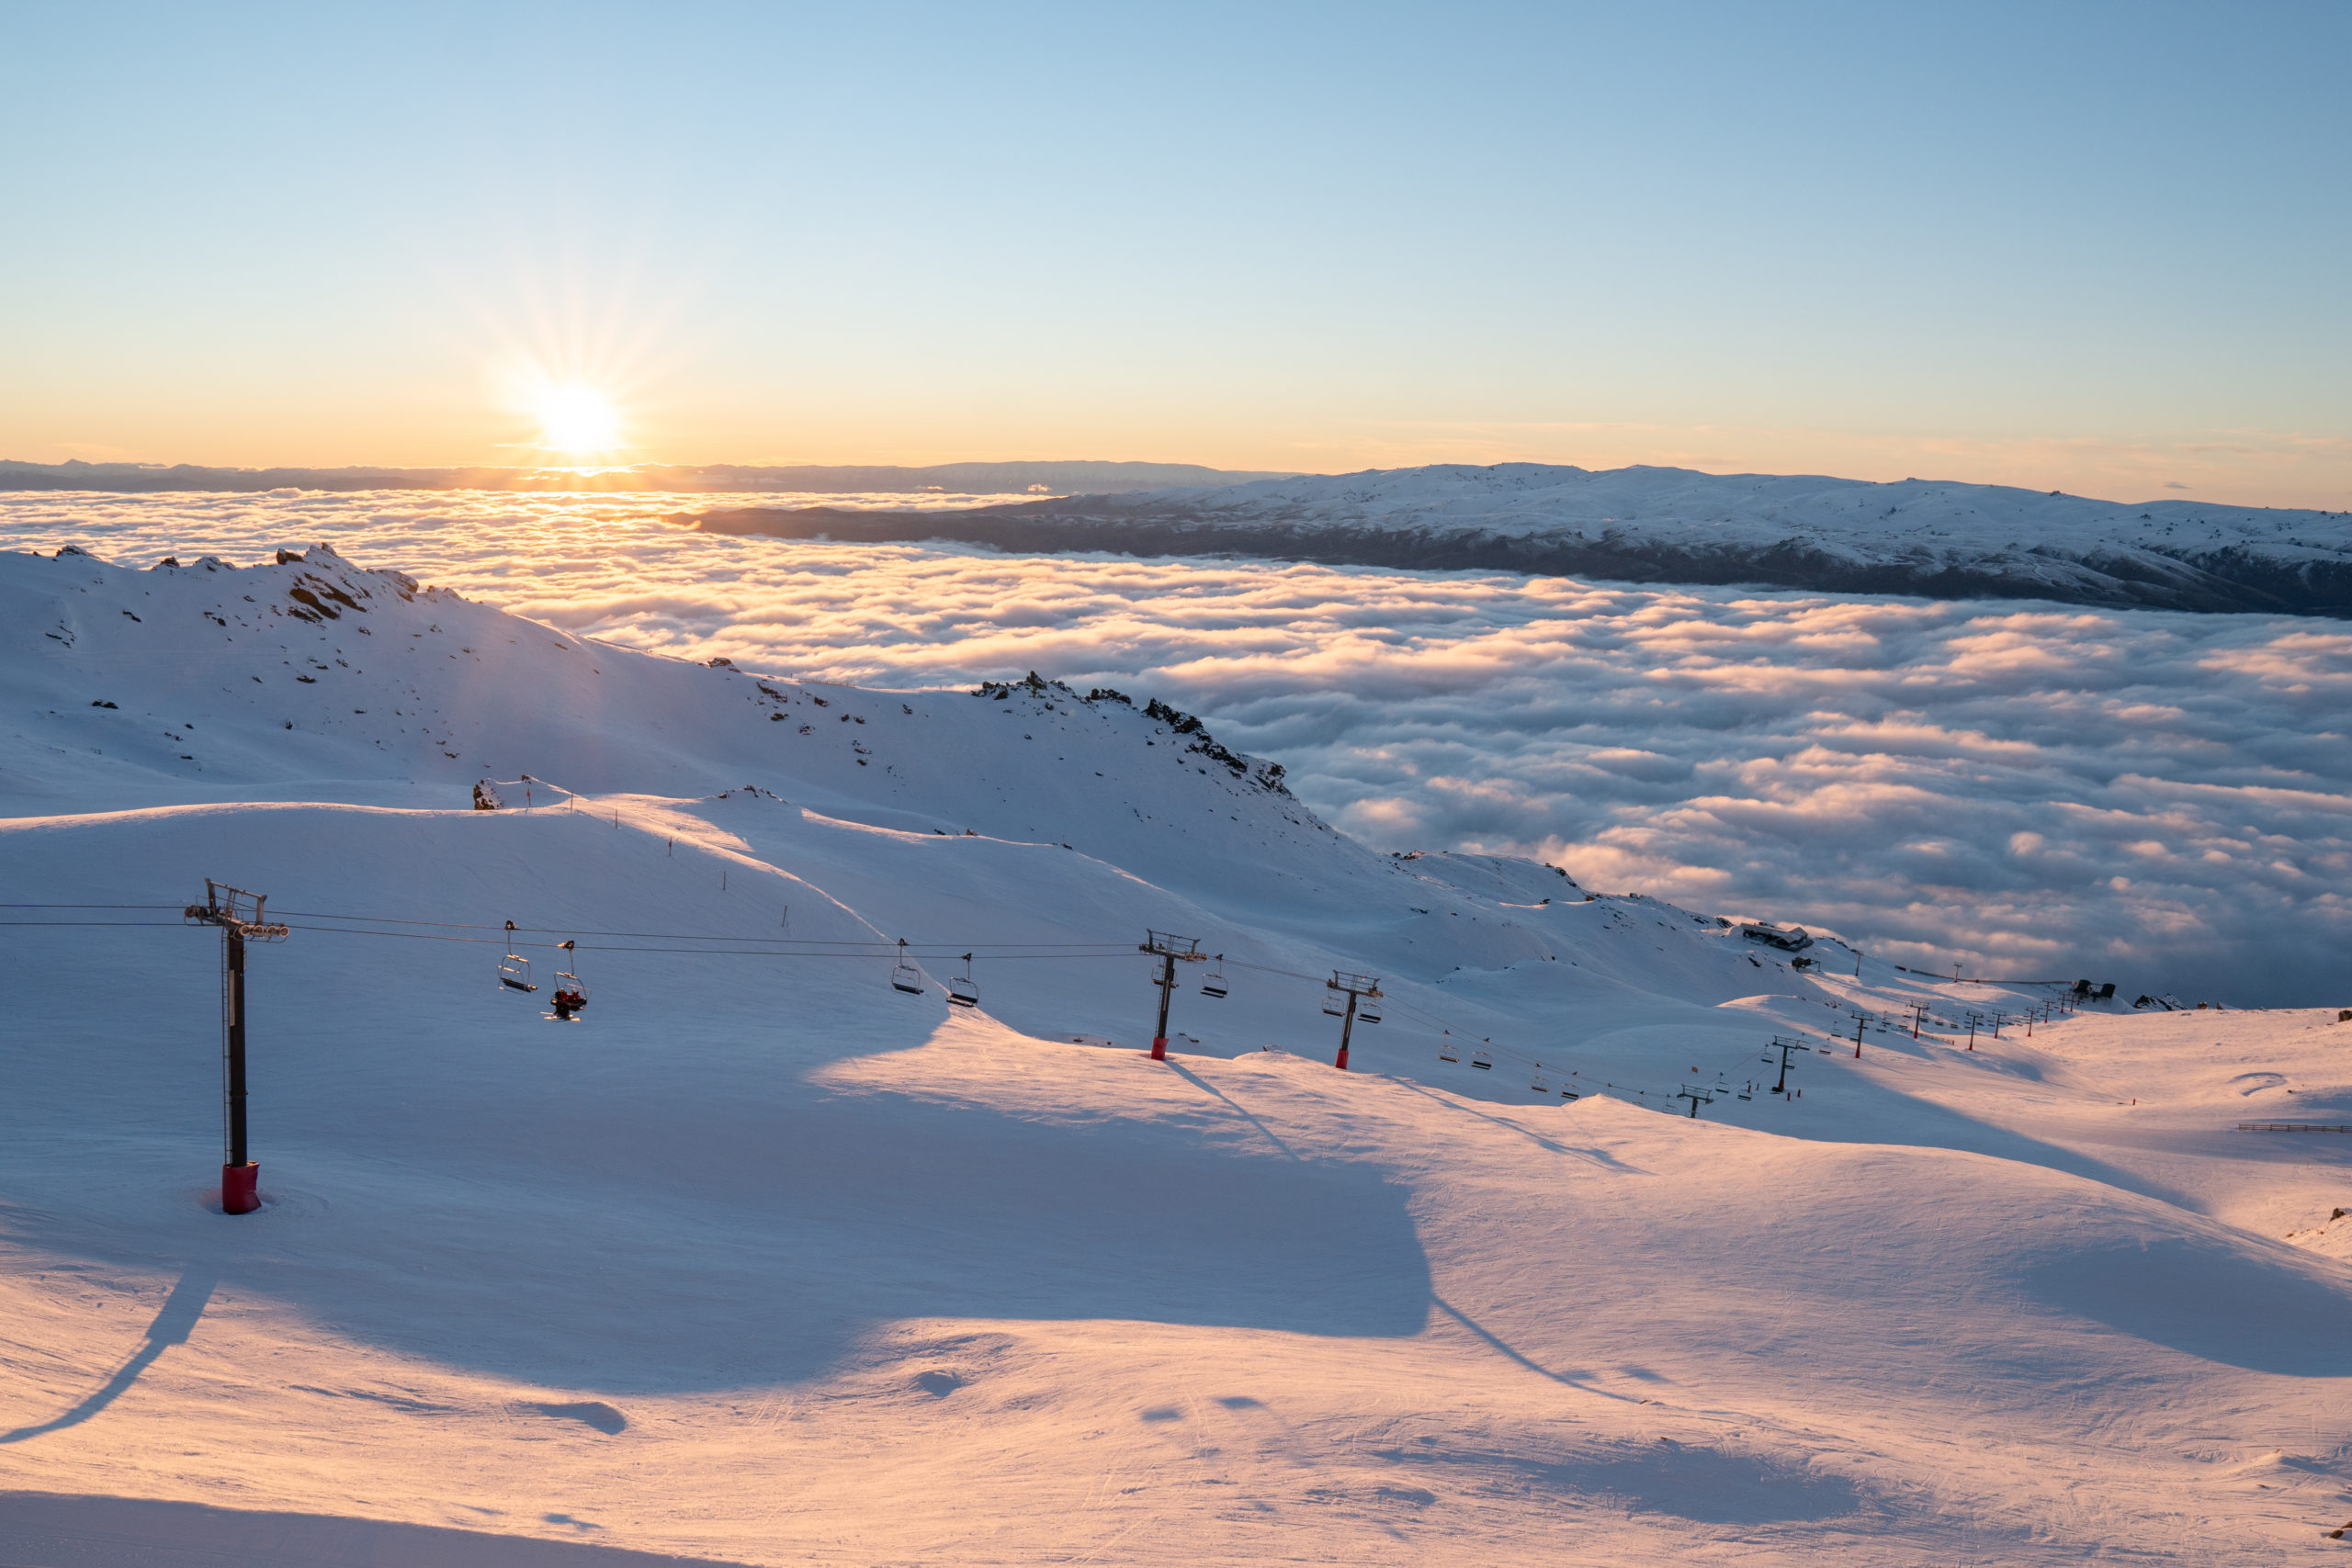 Image courtesy of Cardrona Alpine Resort